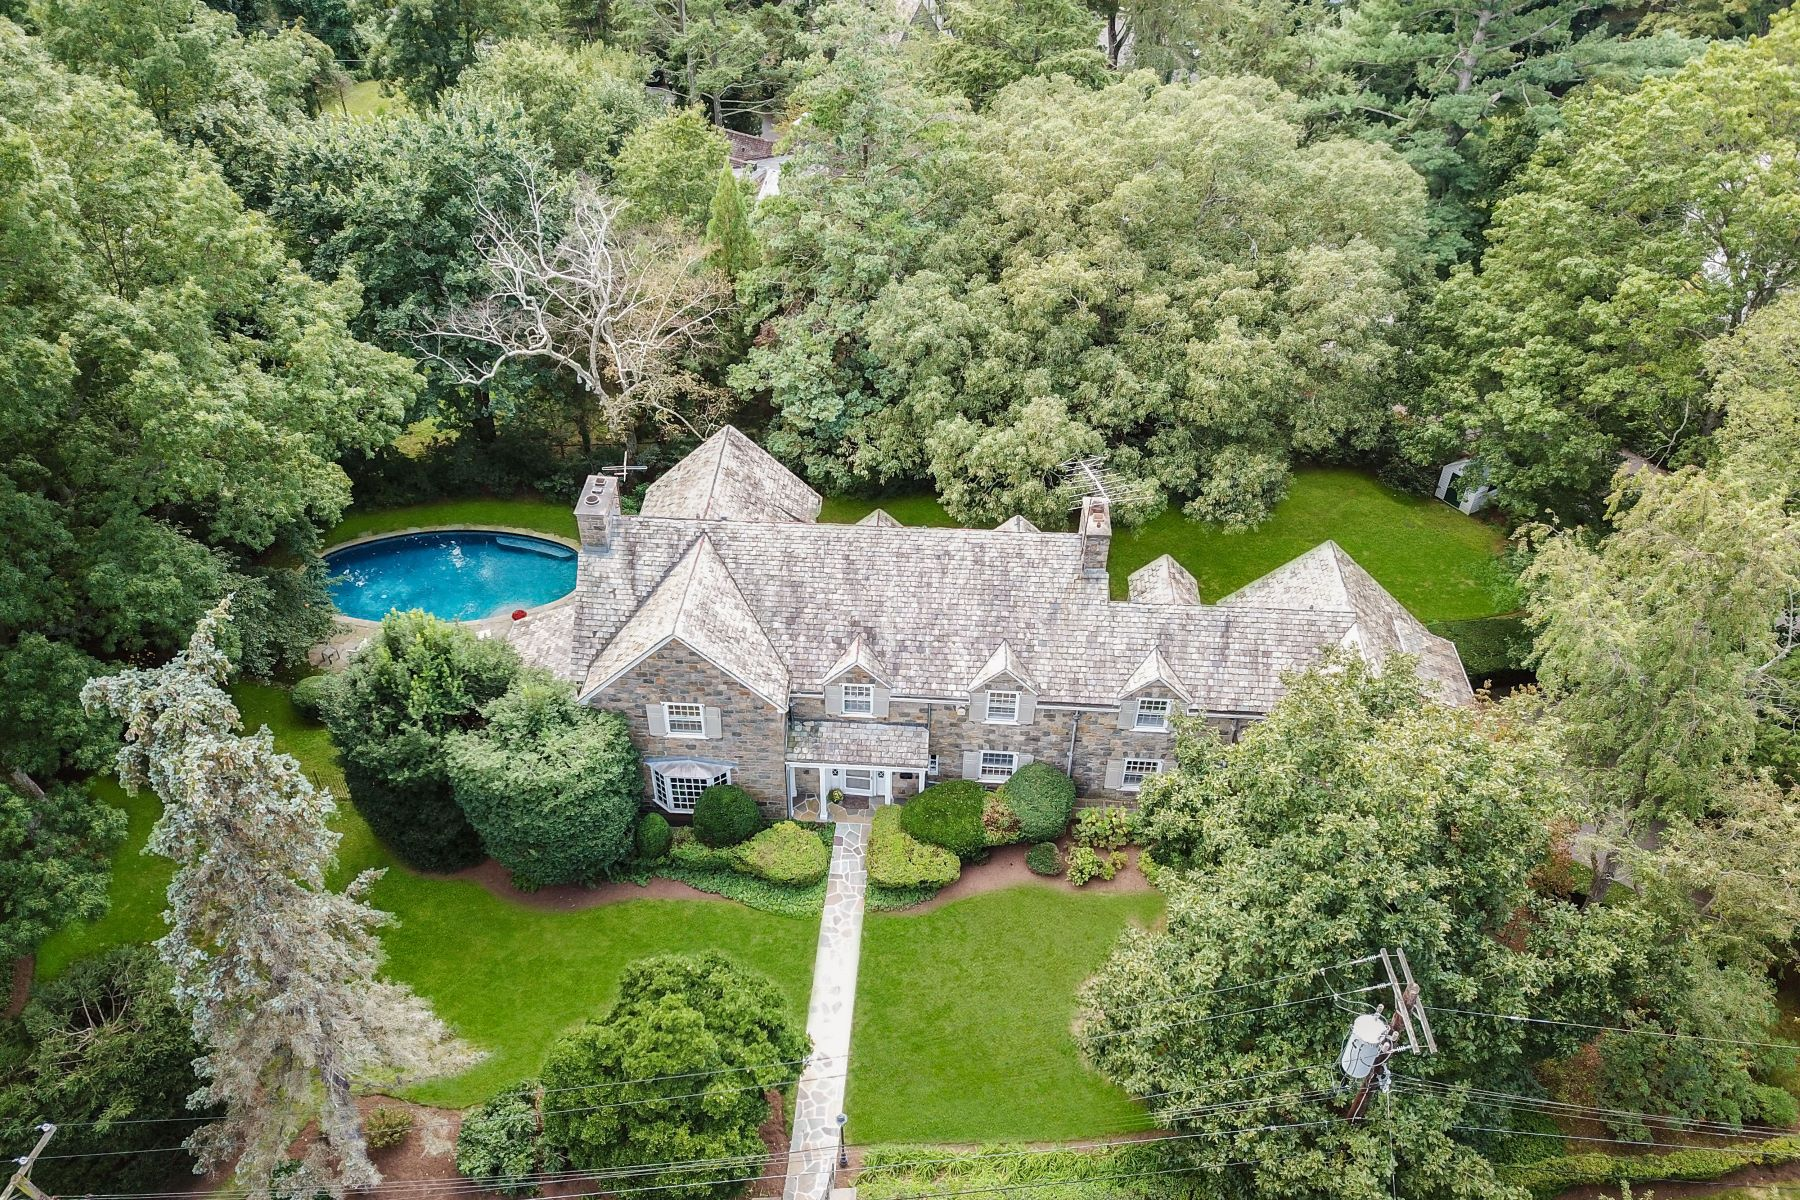 Single Family Homes for Sale at 26 Bonnie Briar Lane Larchmont, New York 10538 United States